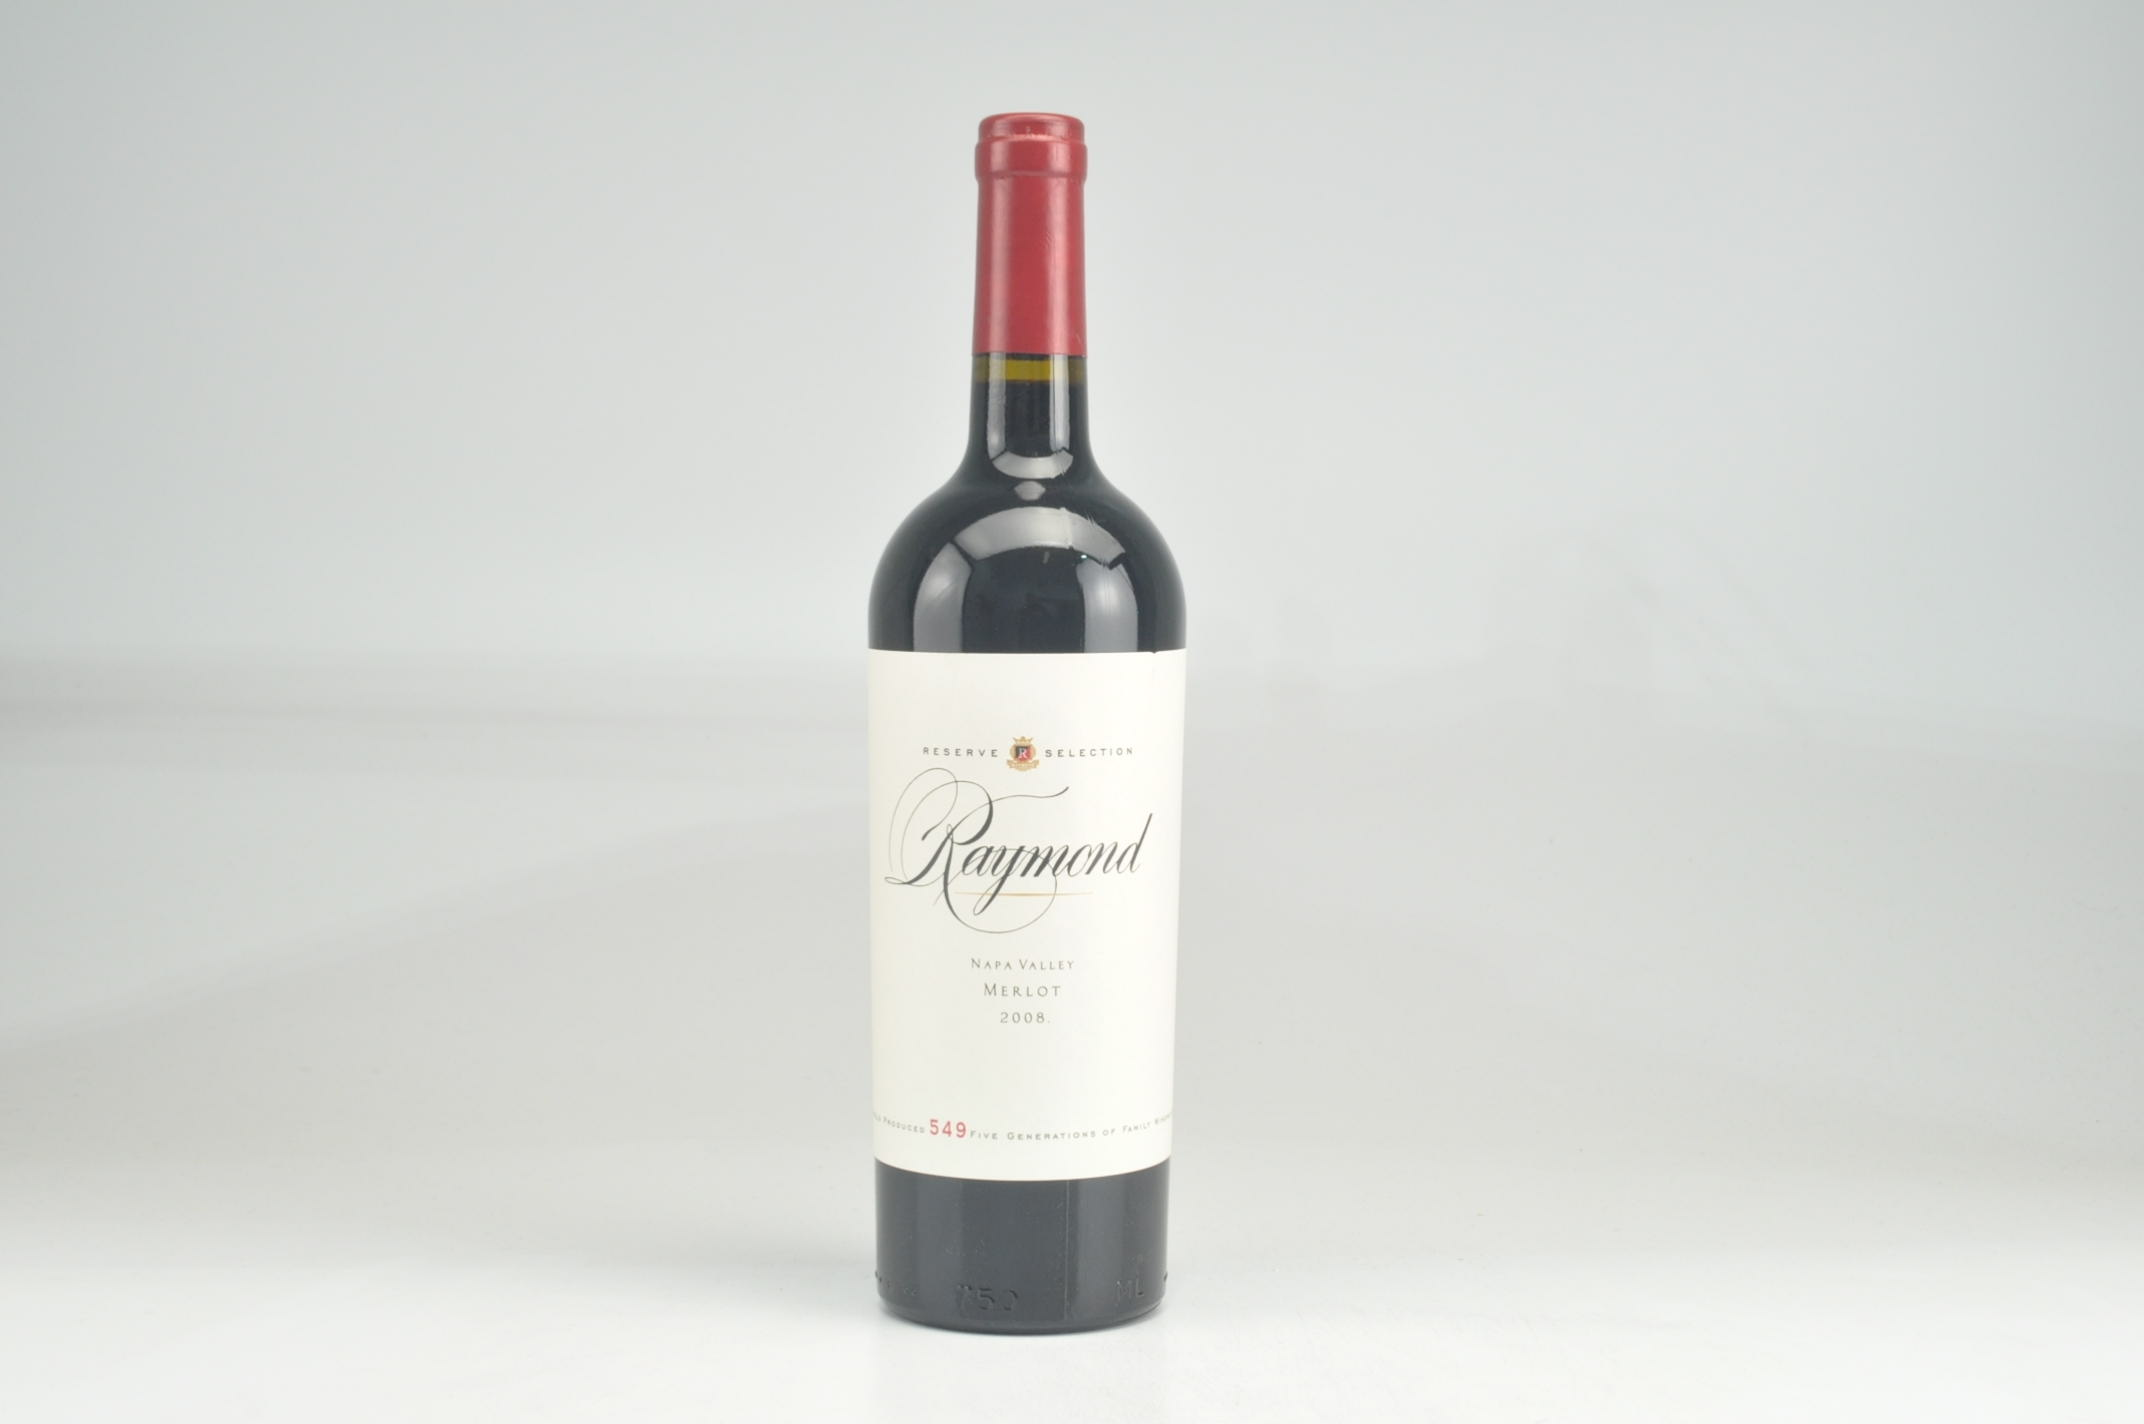 2008 Raymond Vineyard & Cellar Merlot